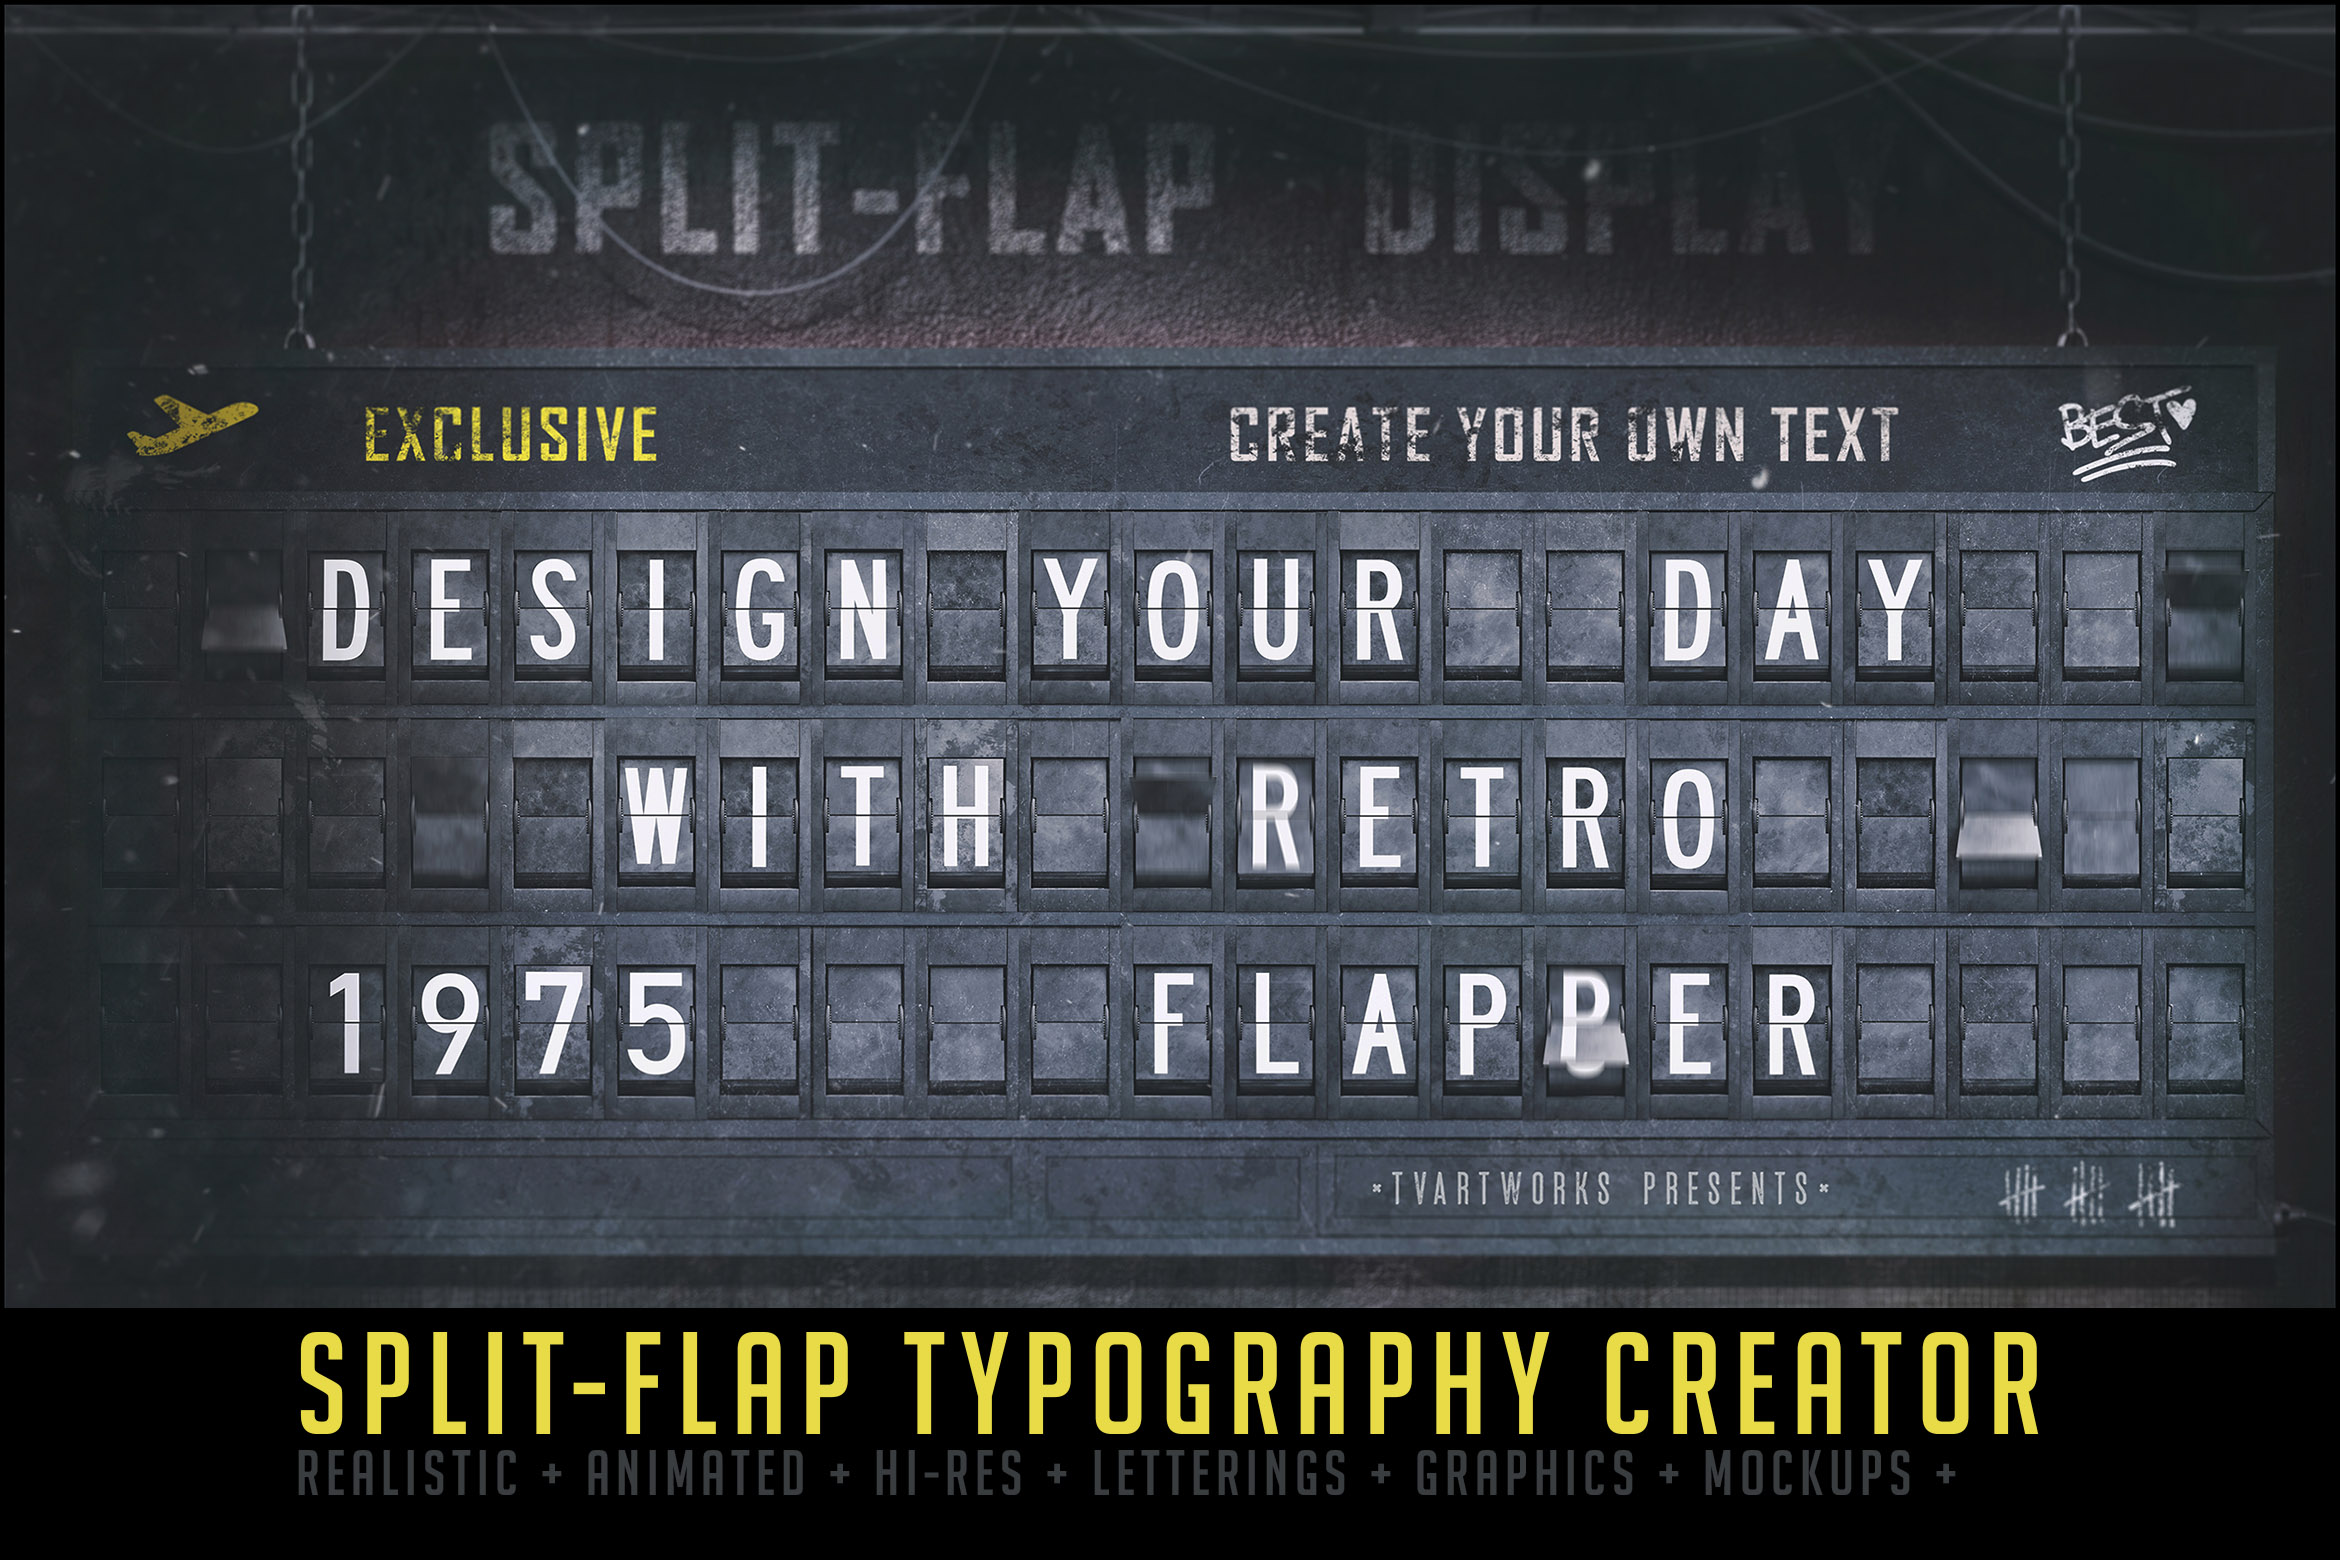 Split-Flap Typography Creator